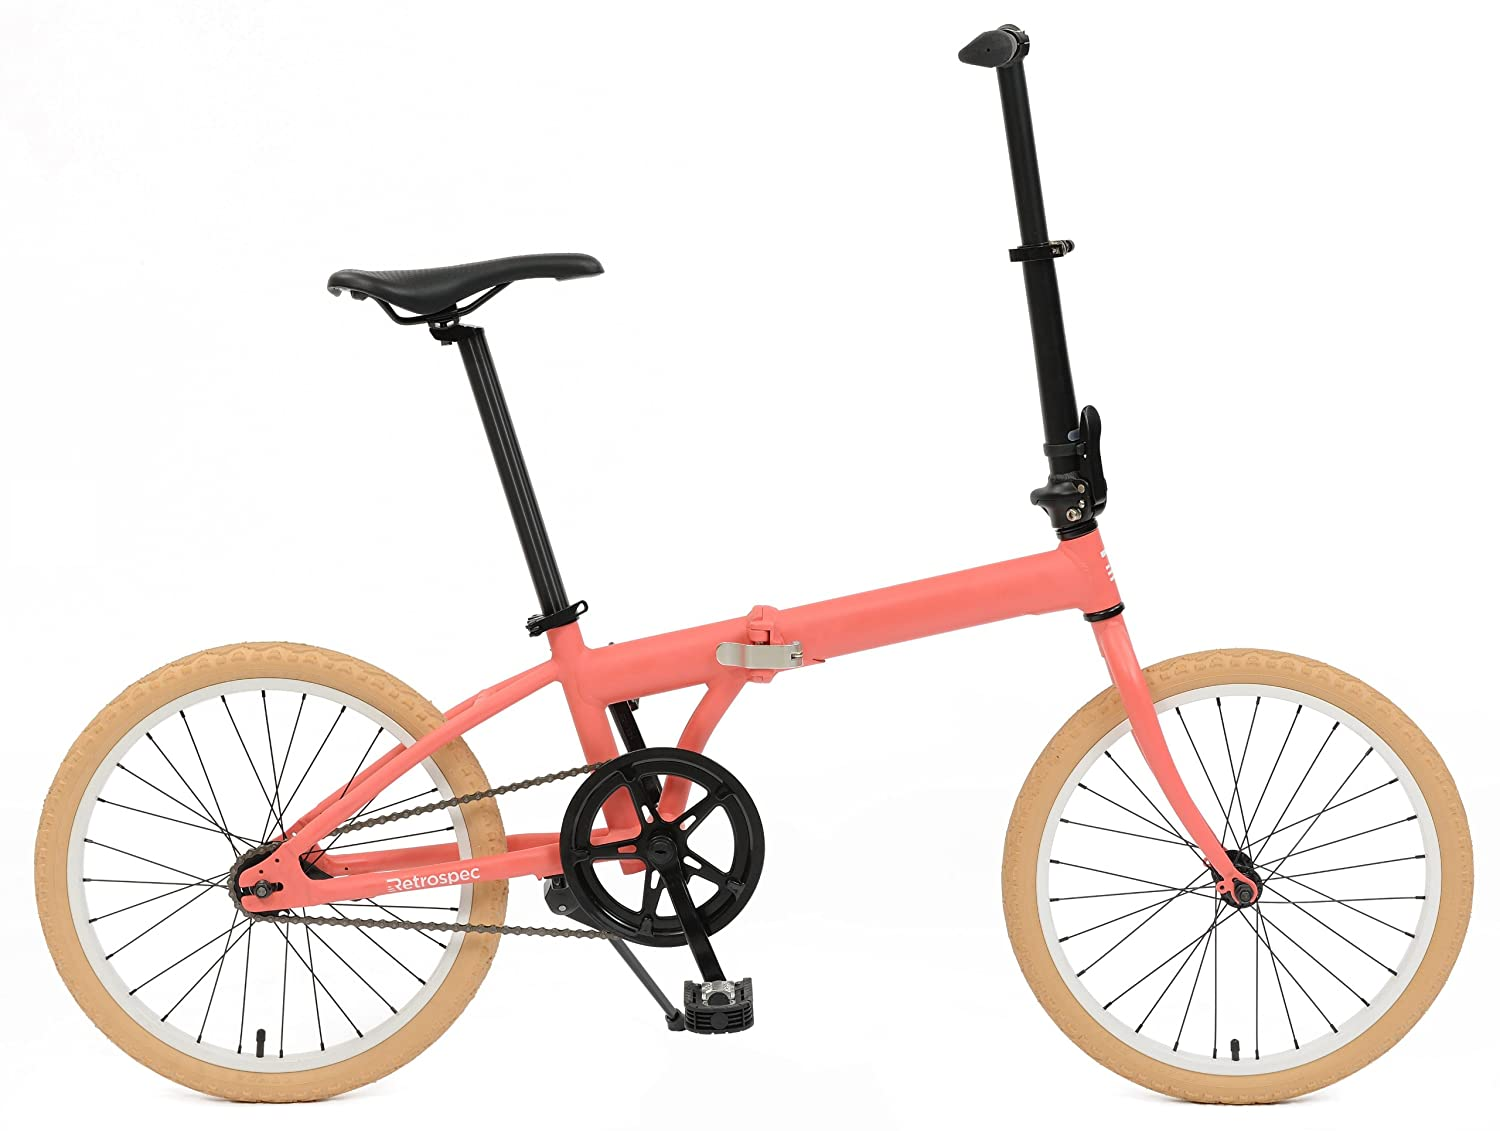 Retrospec Bicycles Speck Folding Single-Speed Bicycle Review